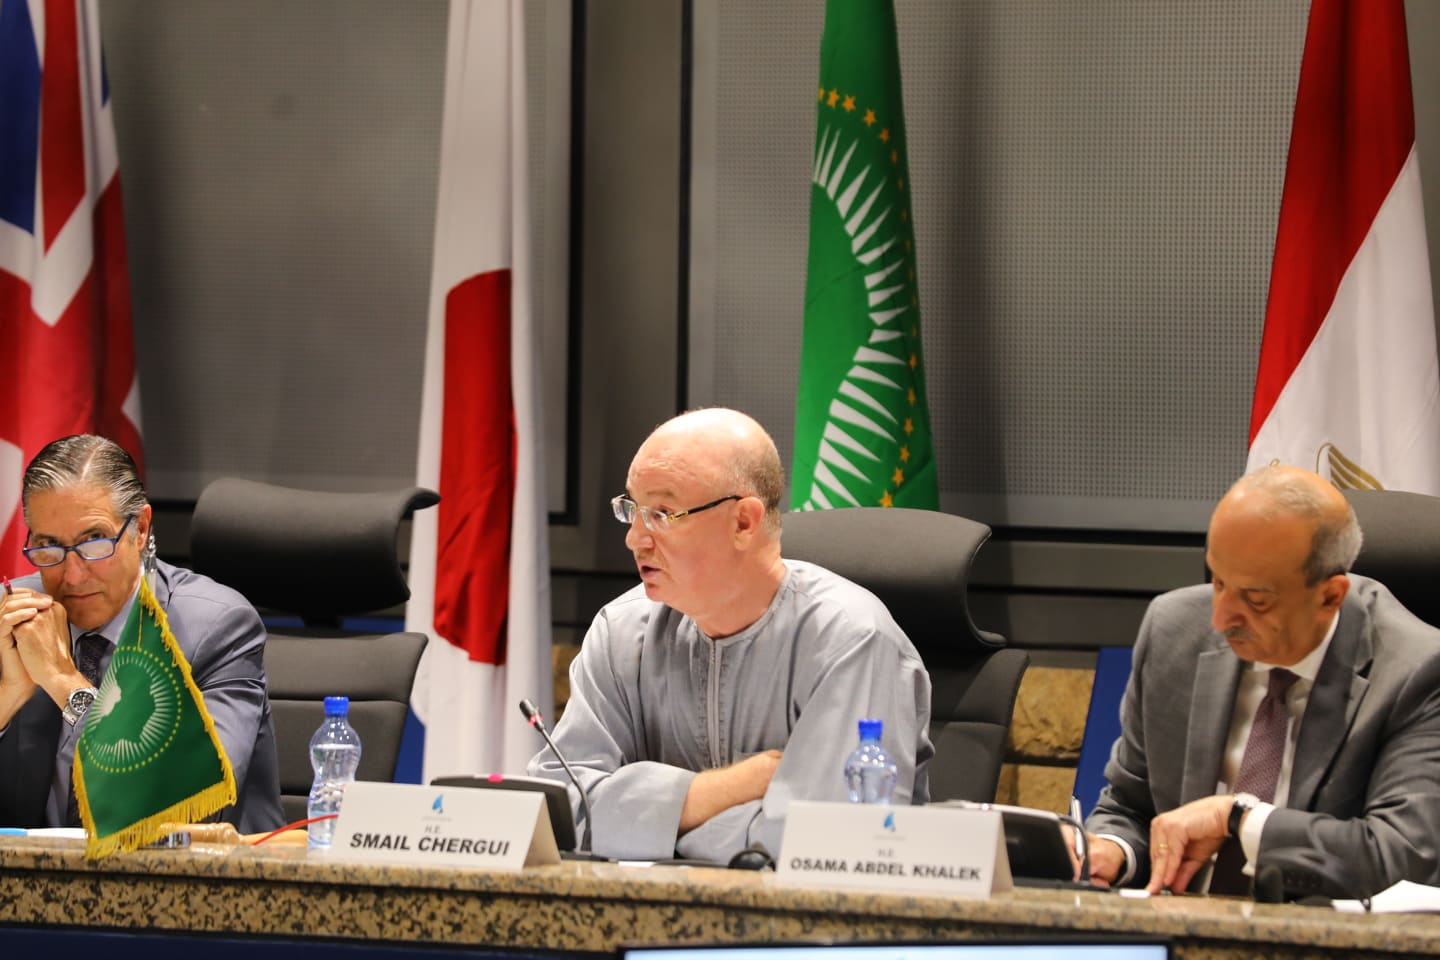 Statement made by His Excellency Ambassador Smail Chergui, Commissioner for Peace and Security at the Peacebuilding Workshop